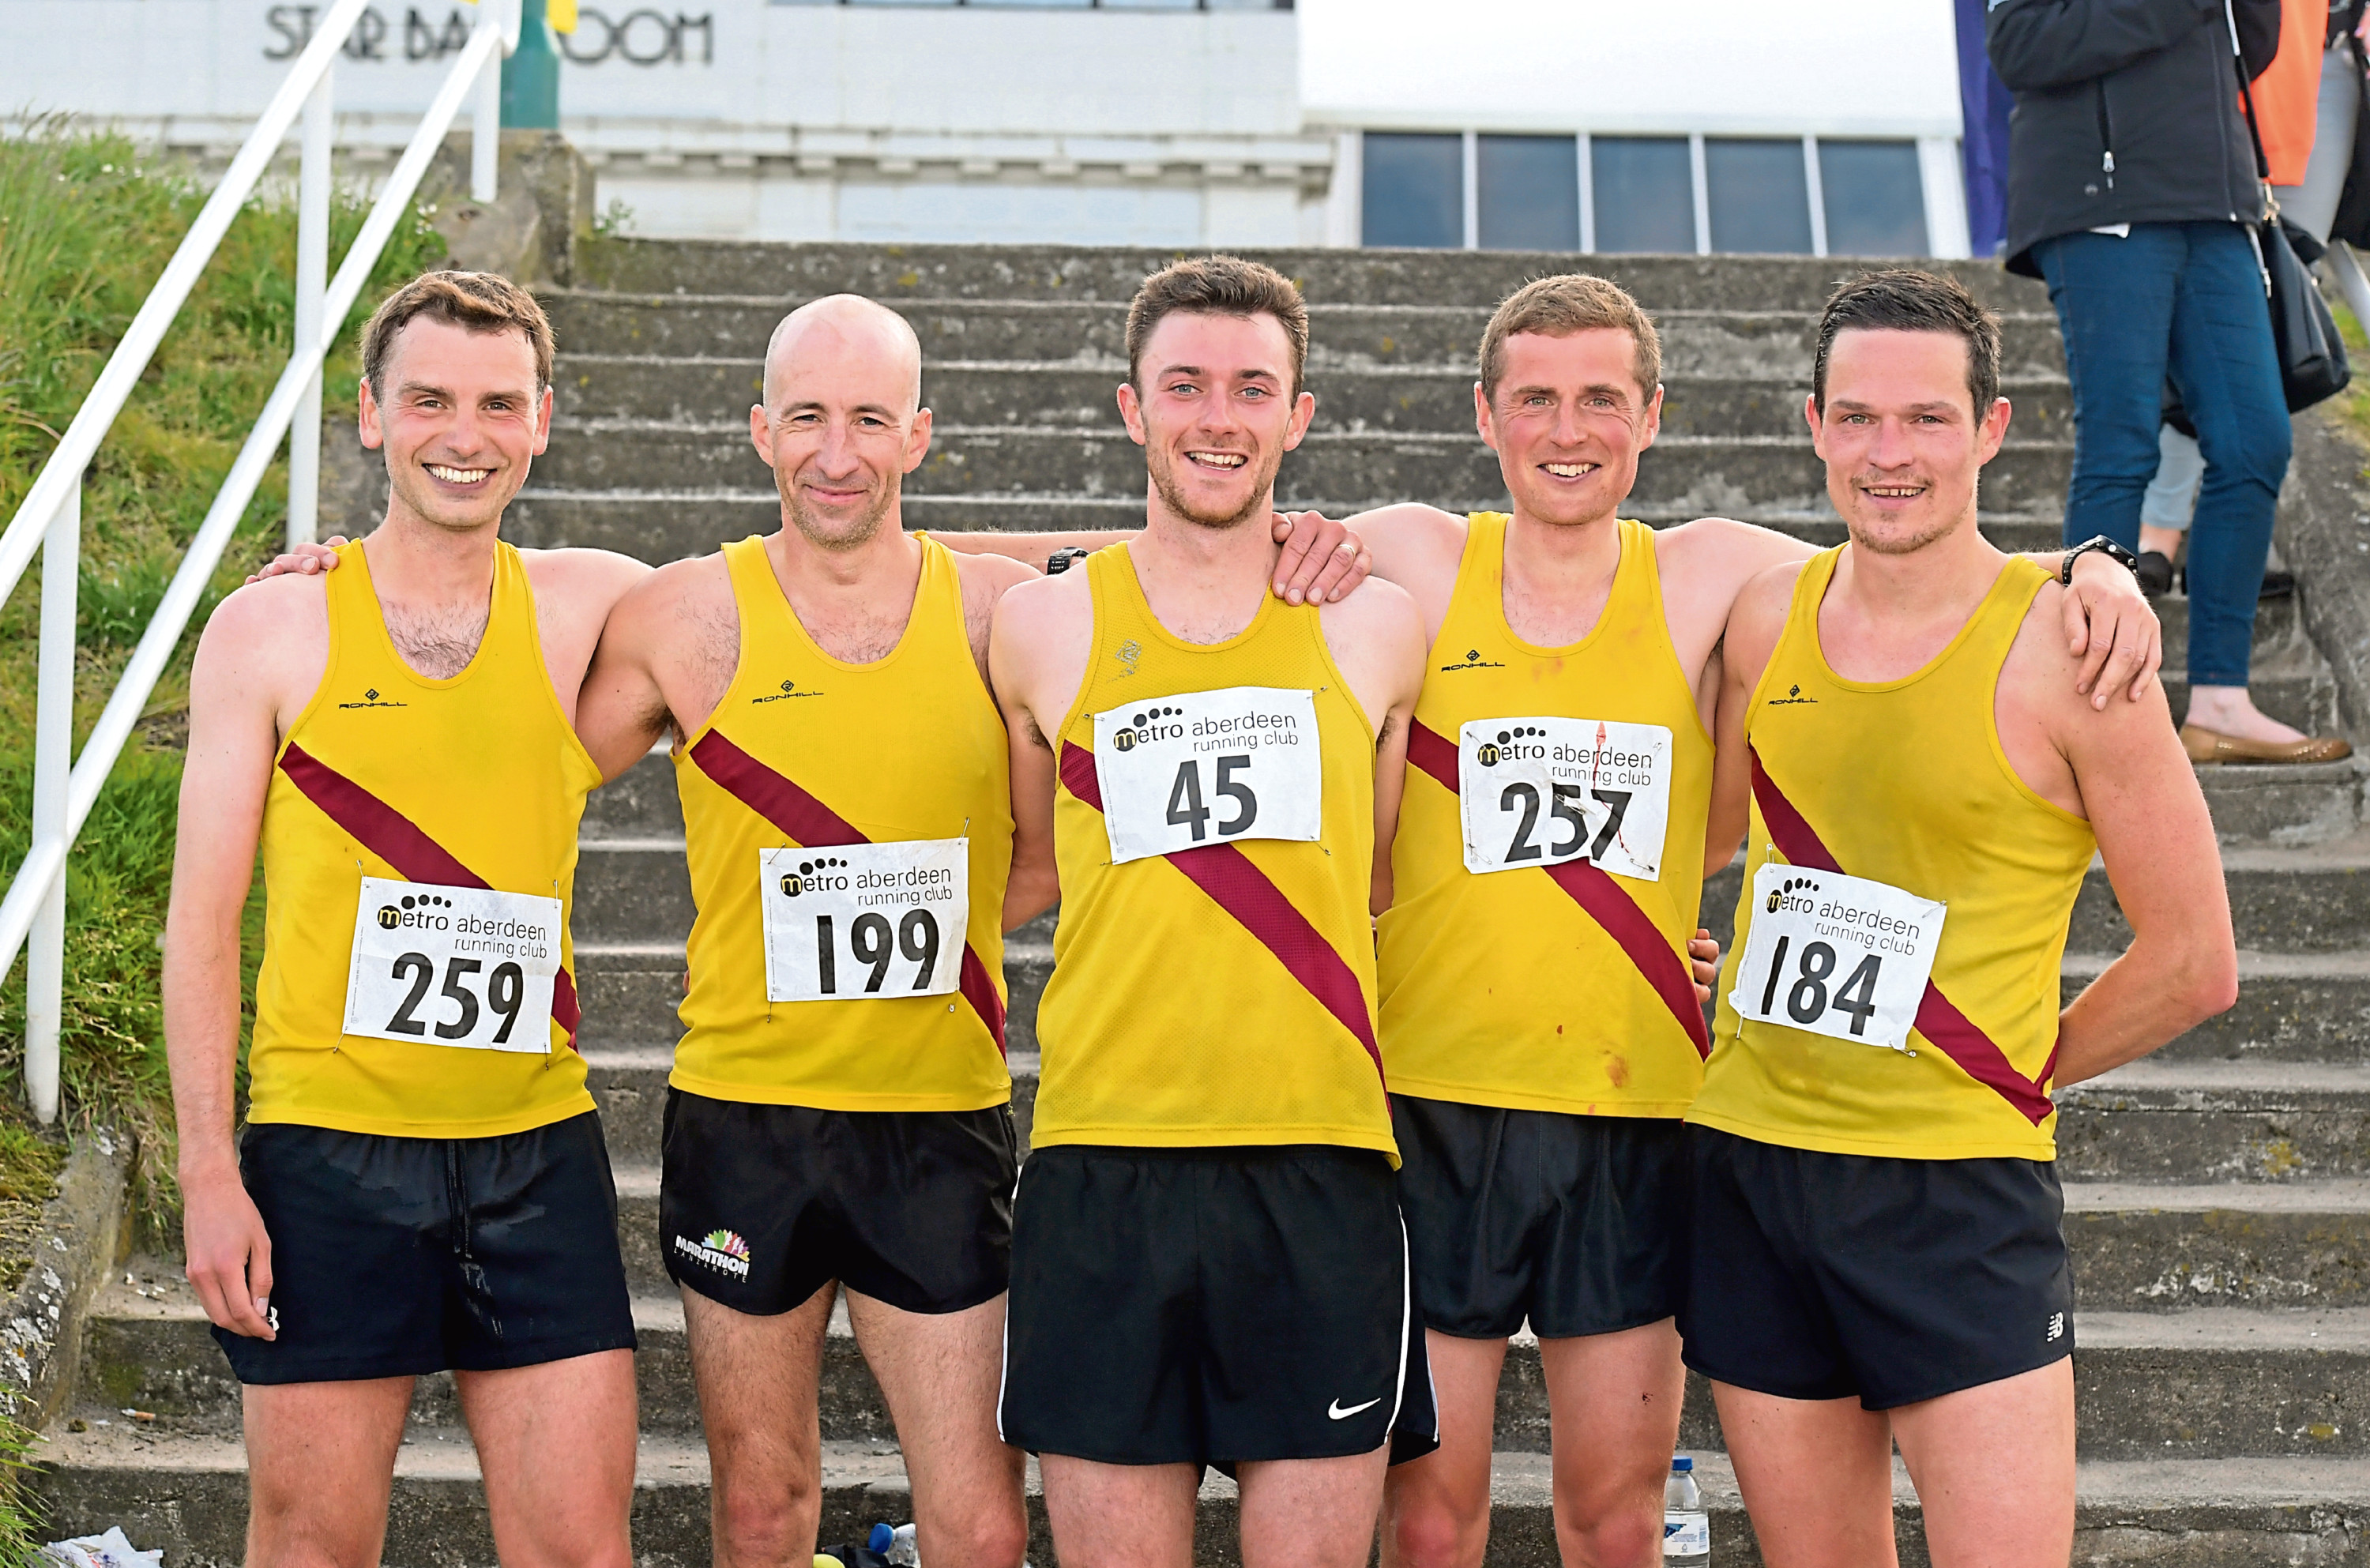 Metro Aberdeen Beach 10km. Inverness Harriers, from left, Michael O'Donnell, Donnie MacDonald, Sean Chalmers, John Newsom and Gordon Lennox.